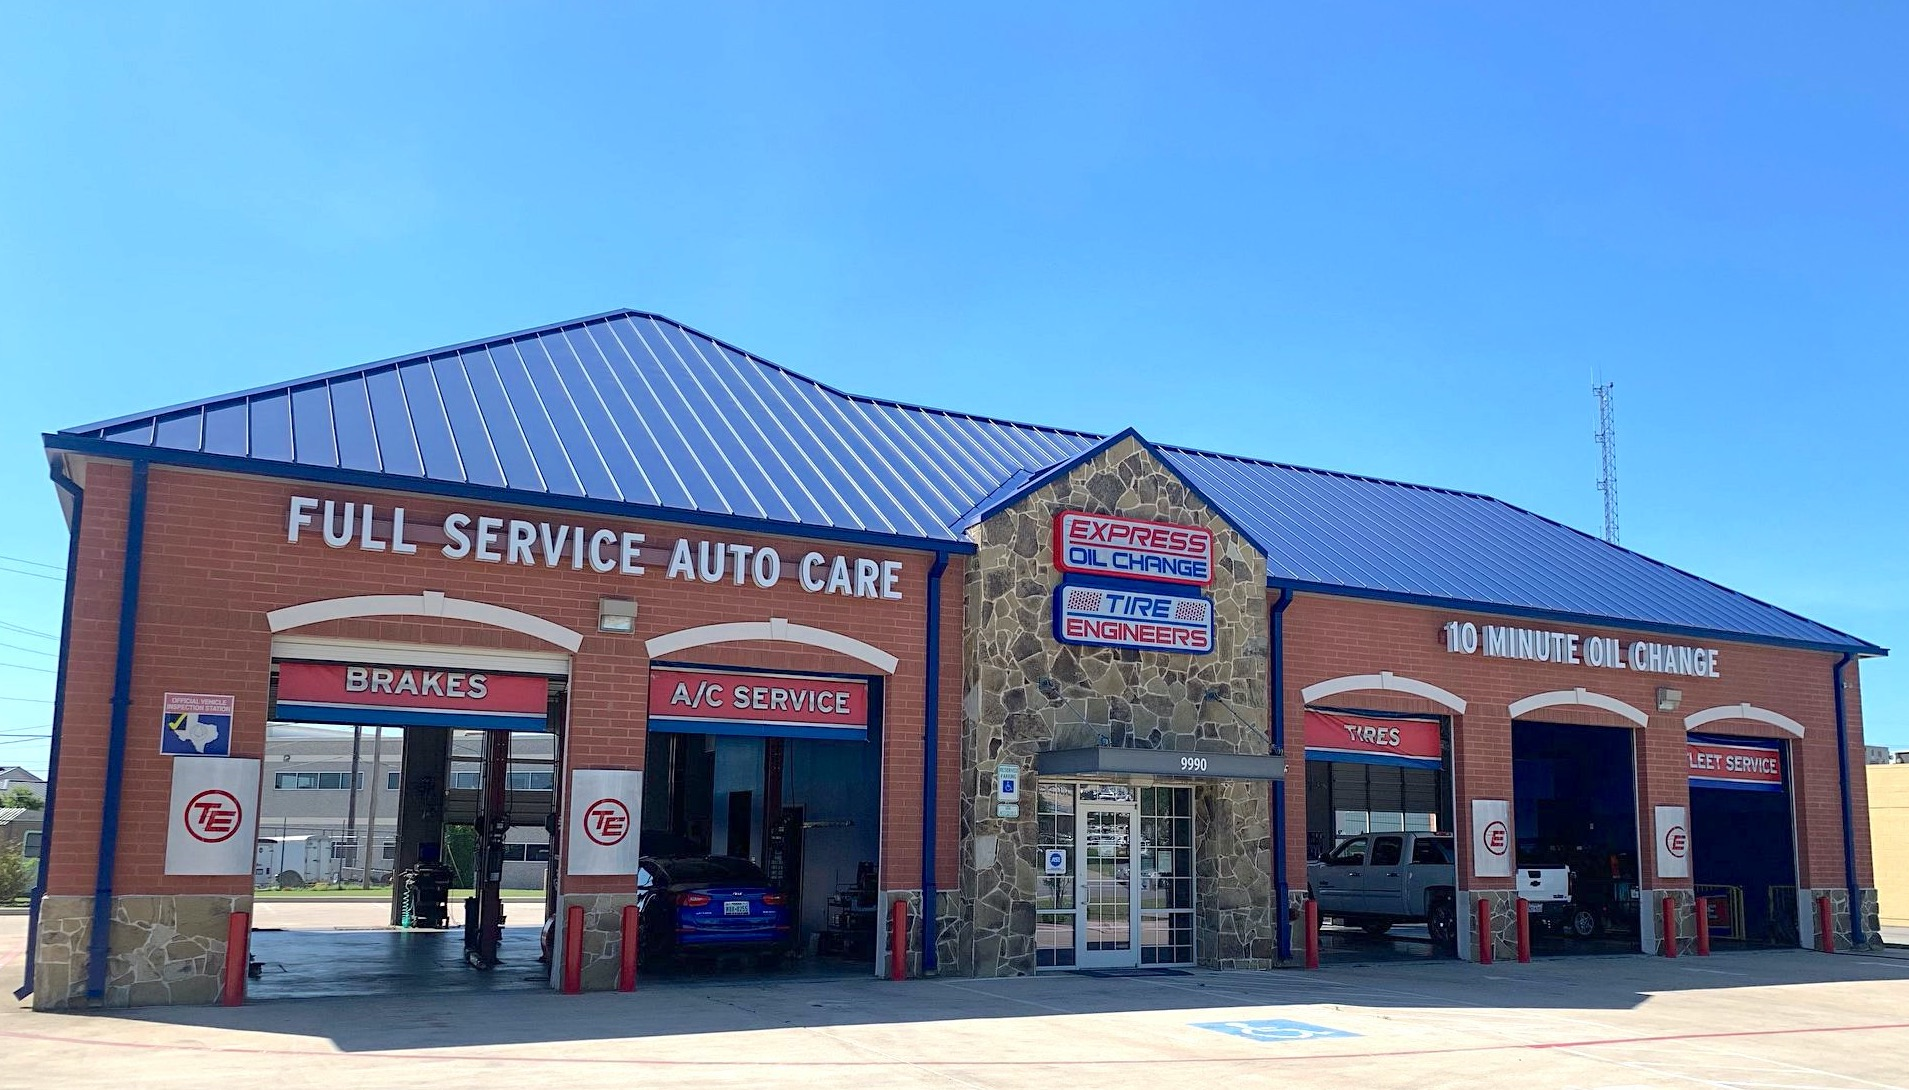 Express Oil Change & Tire Engineers at Hurst, TX - North Richland Hills store